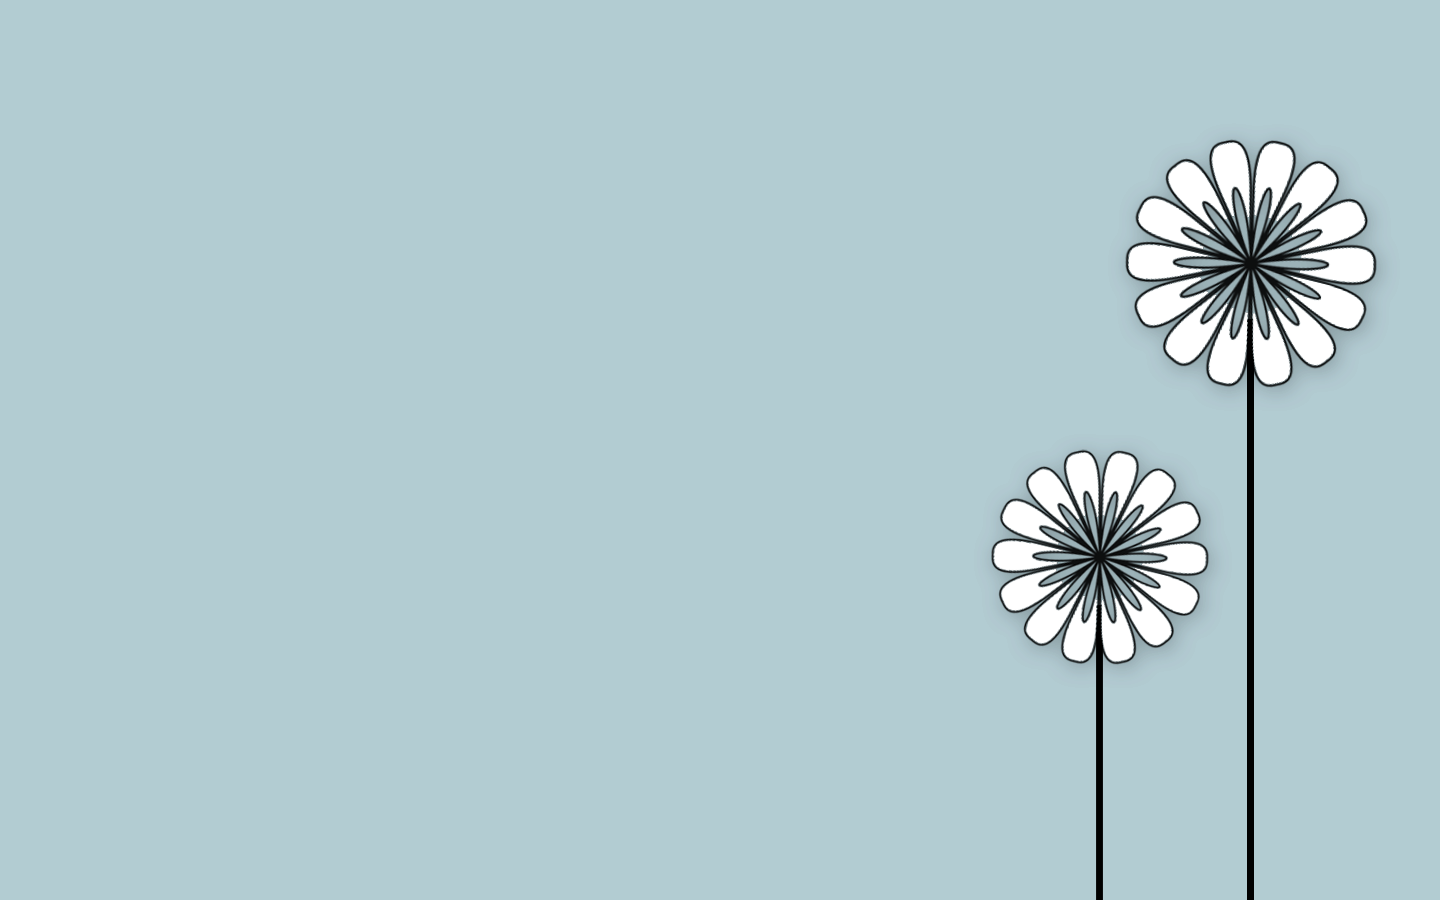 Background Minimalist Desktop Wallpaper Hd 22 Seni Desain